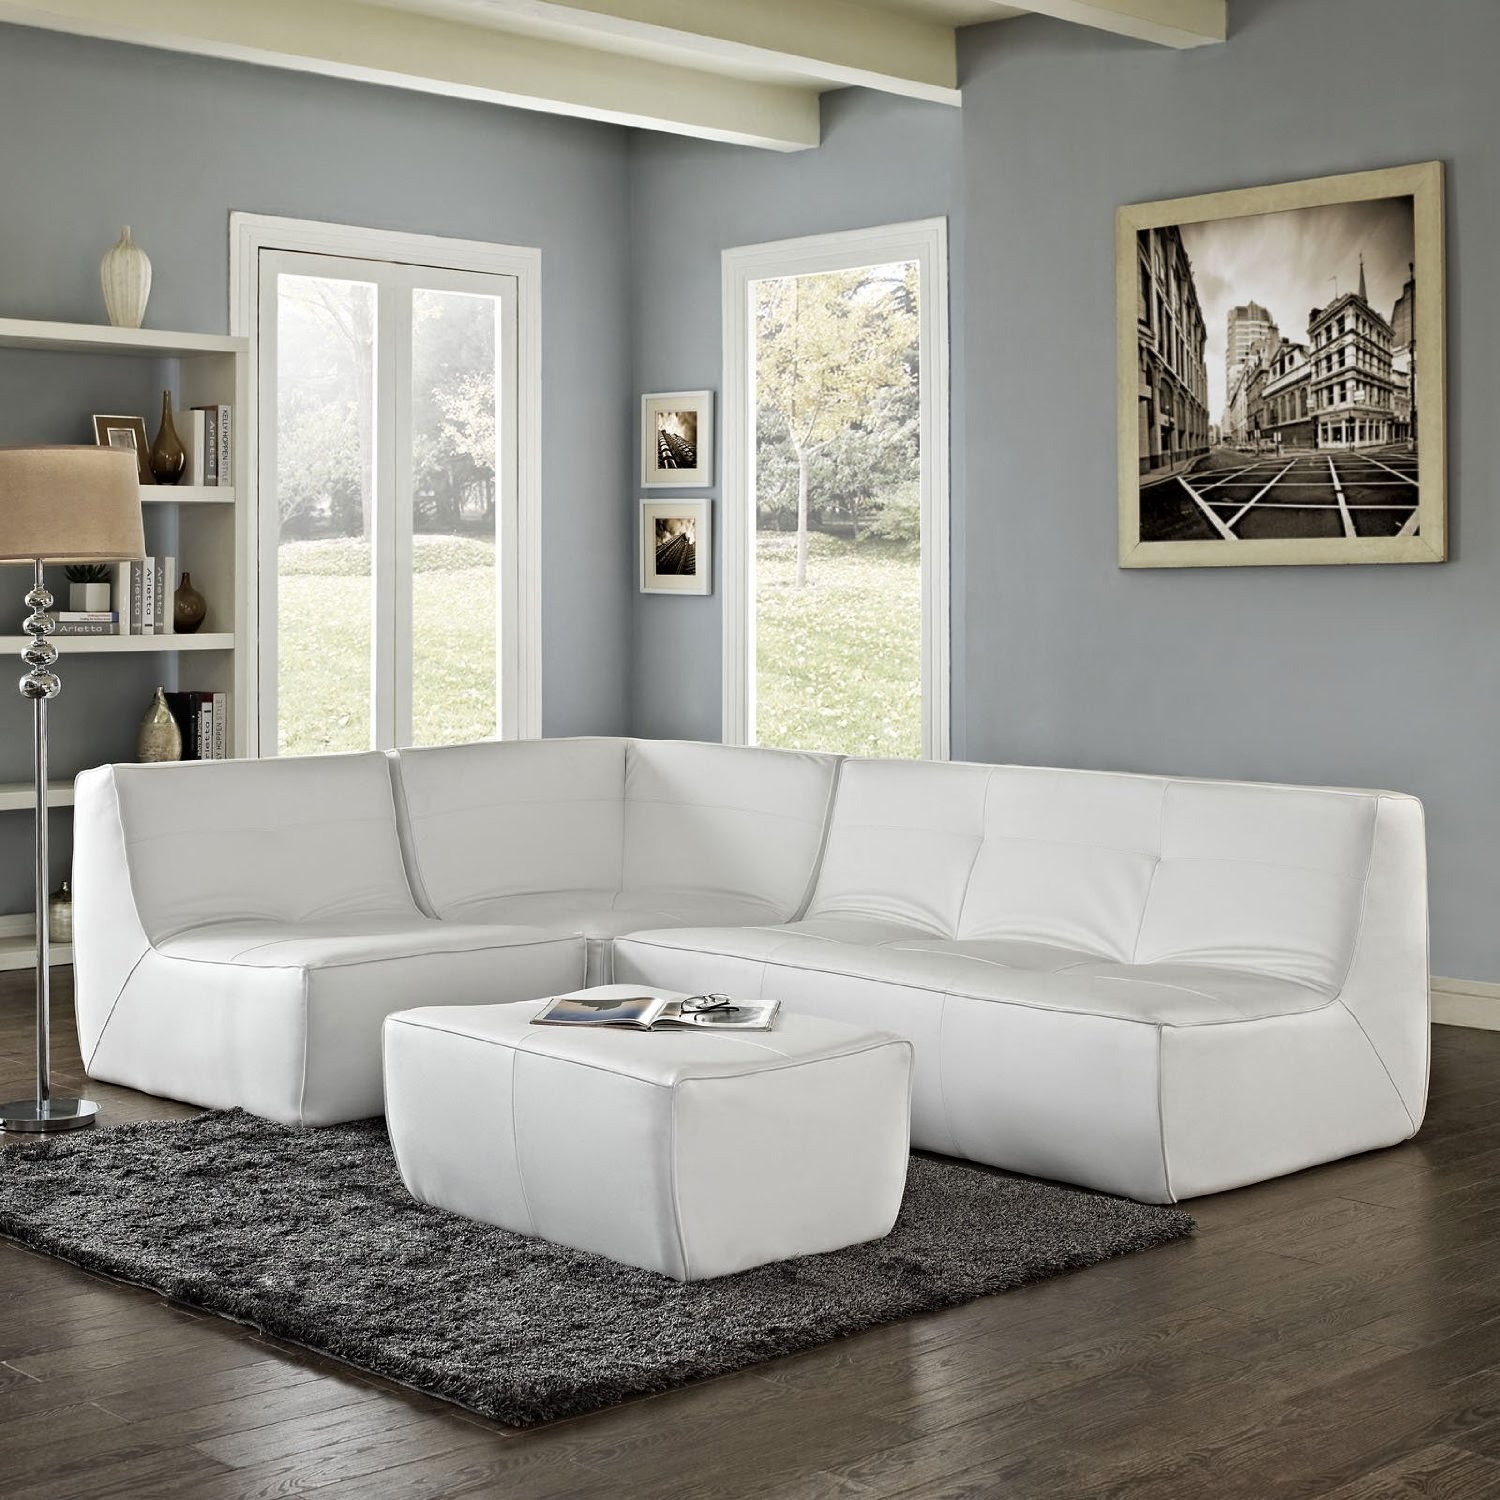 Living Room Design: Exciting White Leather Sectional For Living Room ...